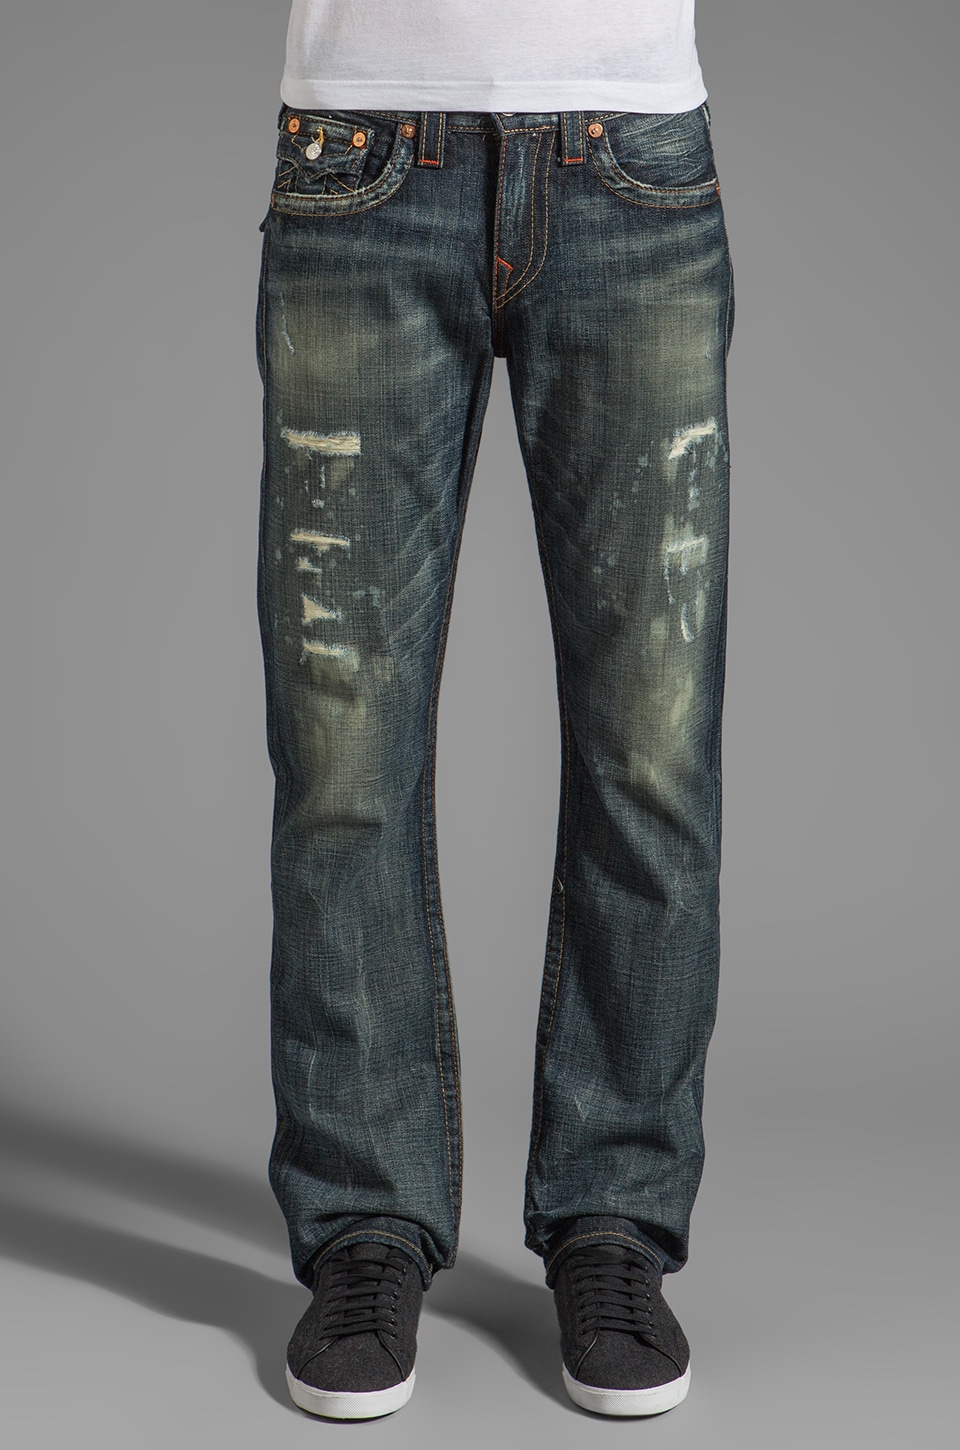 True Religion Jean Ricky Droit en Granite